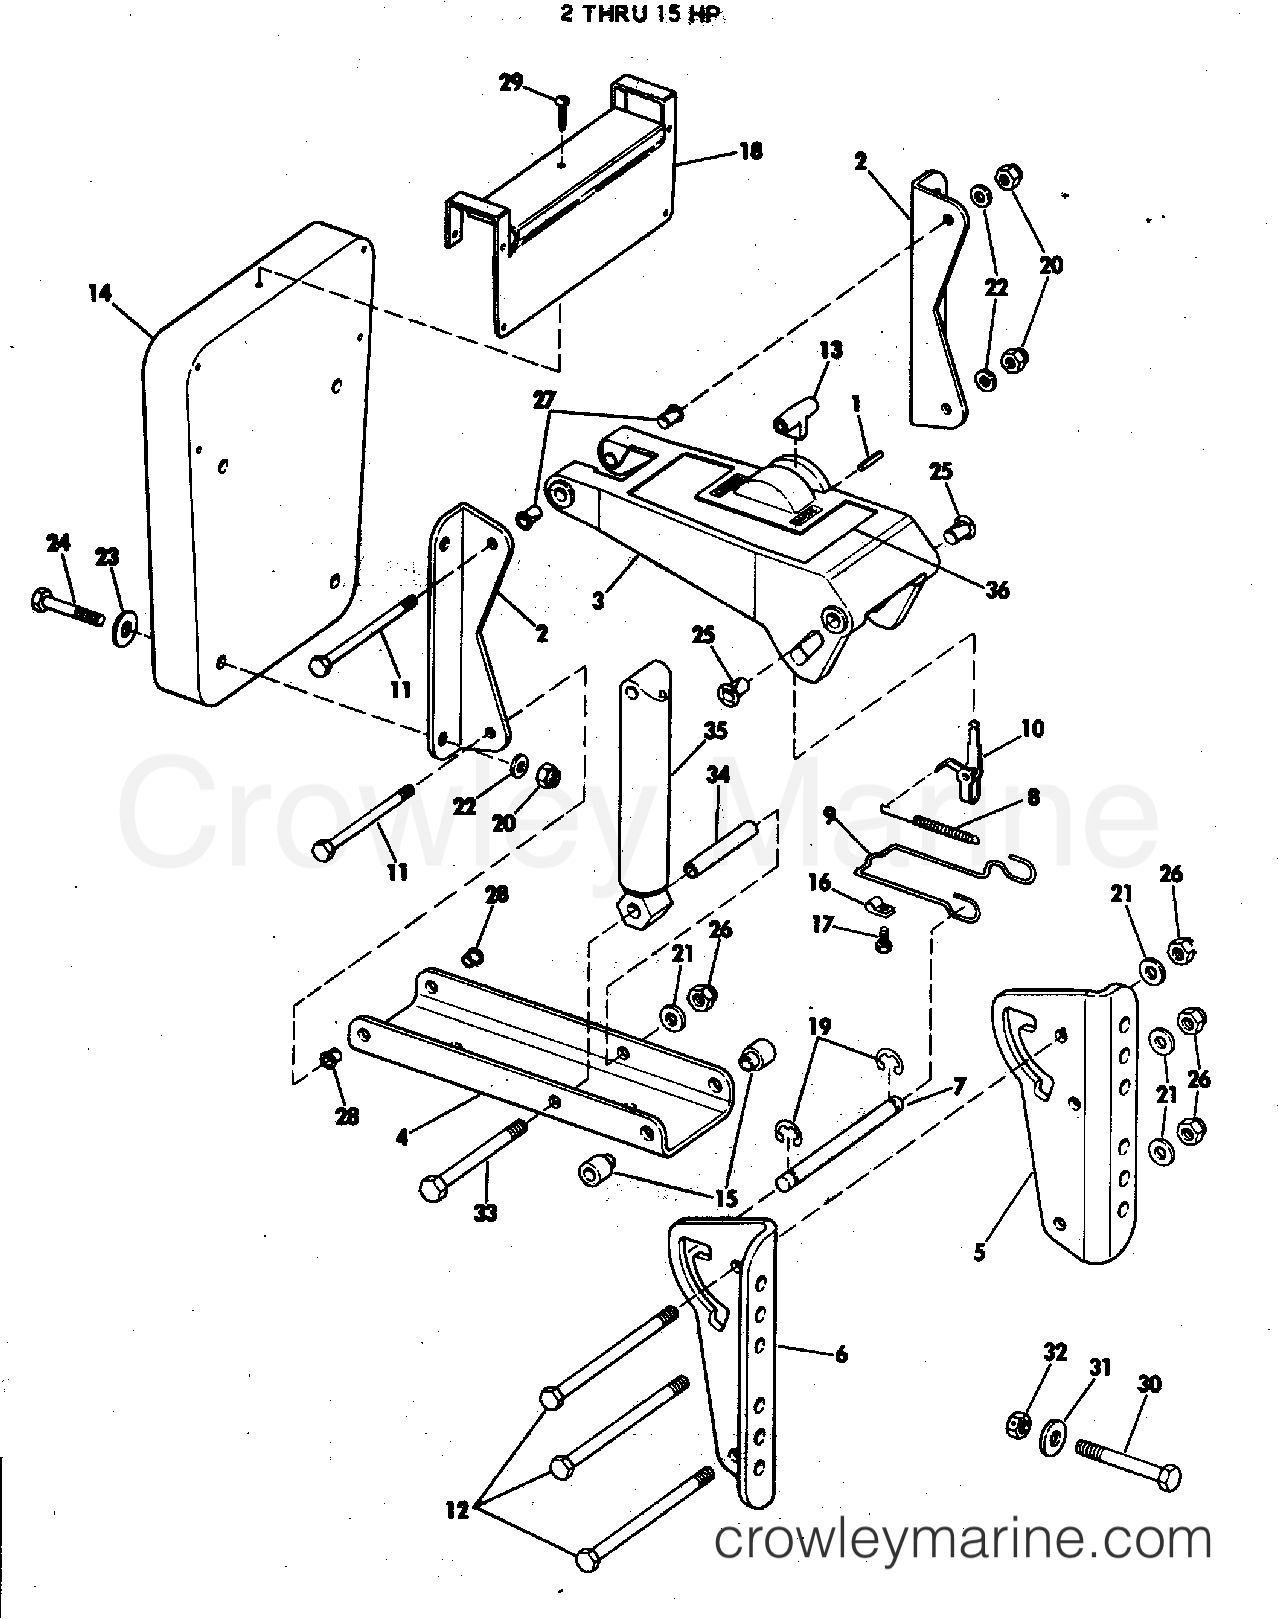 omc engine diagram wiring library OMC Engine Diagram 1977 rigging parts accessories miscellaneous auxiliary motor bracket kit 2 thru 15 hp section